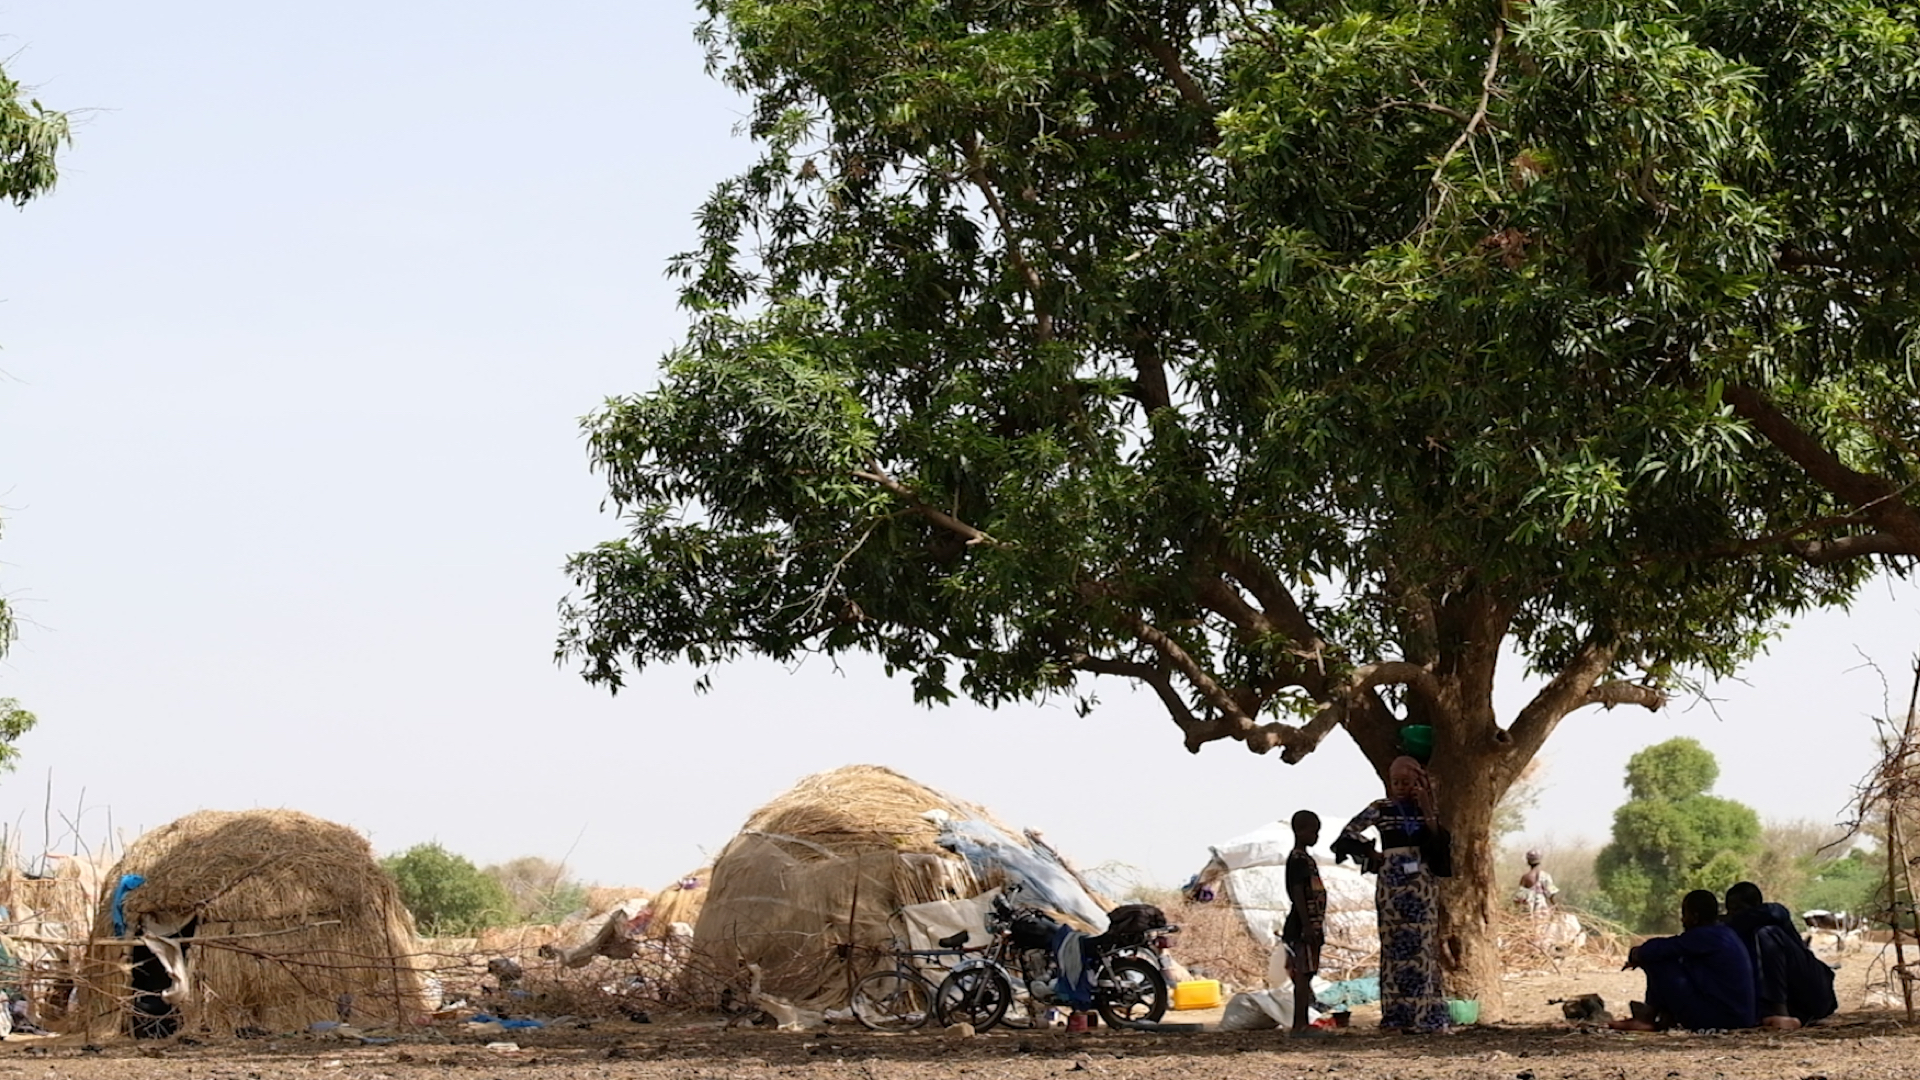 A fulani camp of displaced people outside of Mopti. The nomadic people are struggling with the challenges of displacement and they are far from their traditional grazing lands but they have sought safety after the rise in deadly raids on villages in the region.